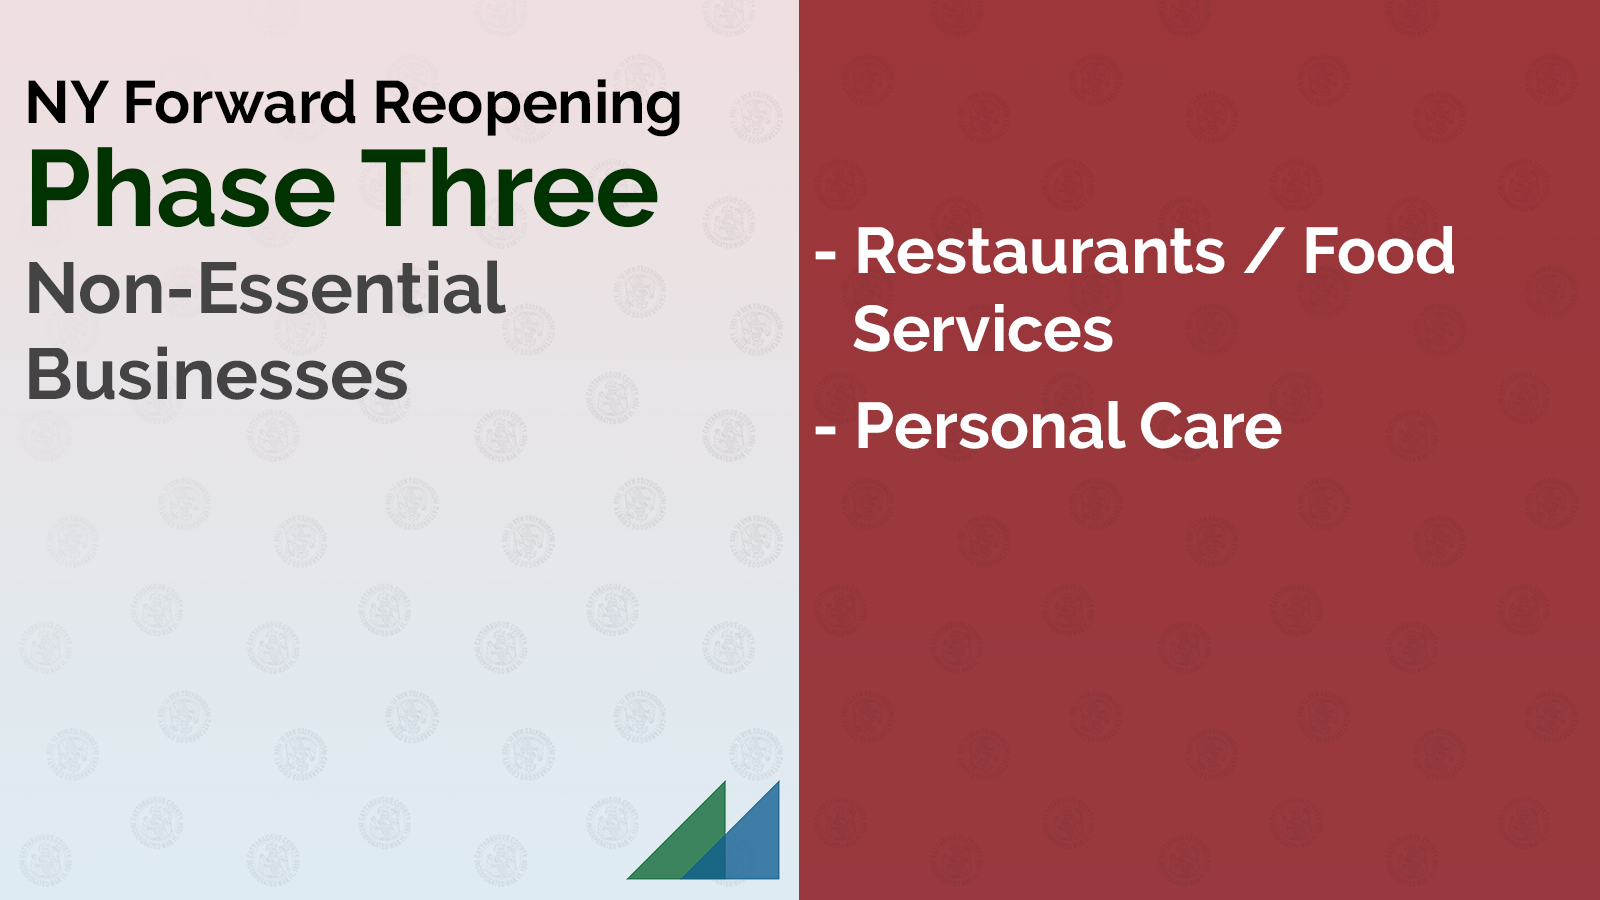 NY Forward Reopening Phase Three: Restaurants / Food Services and Personal Care